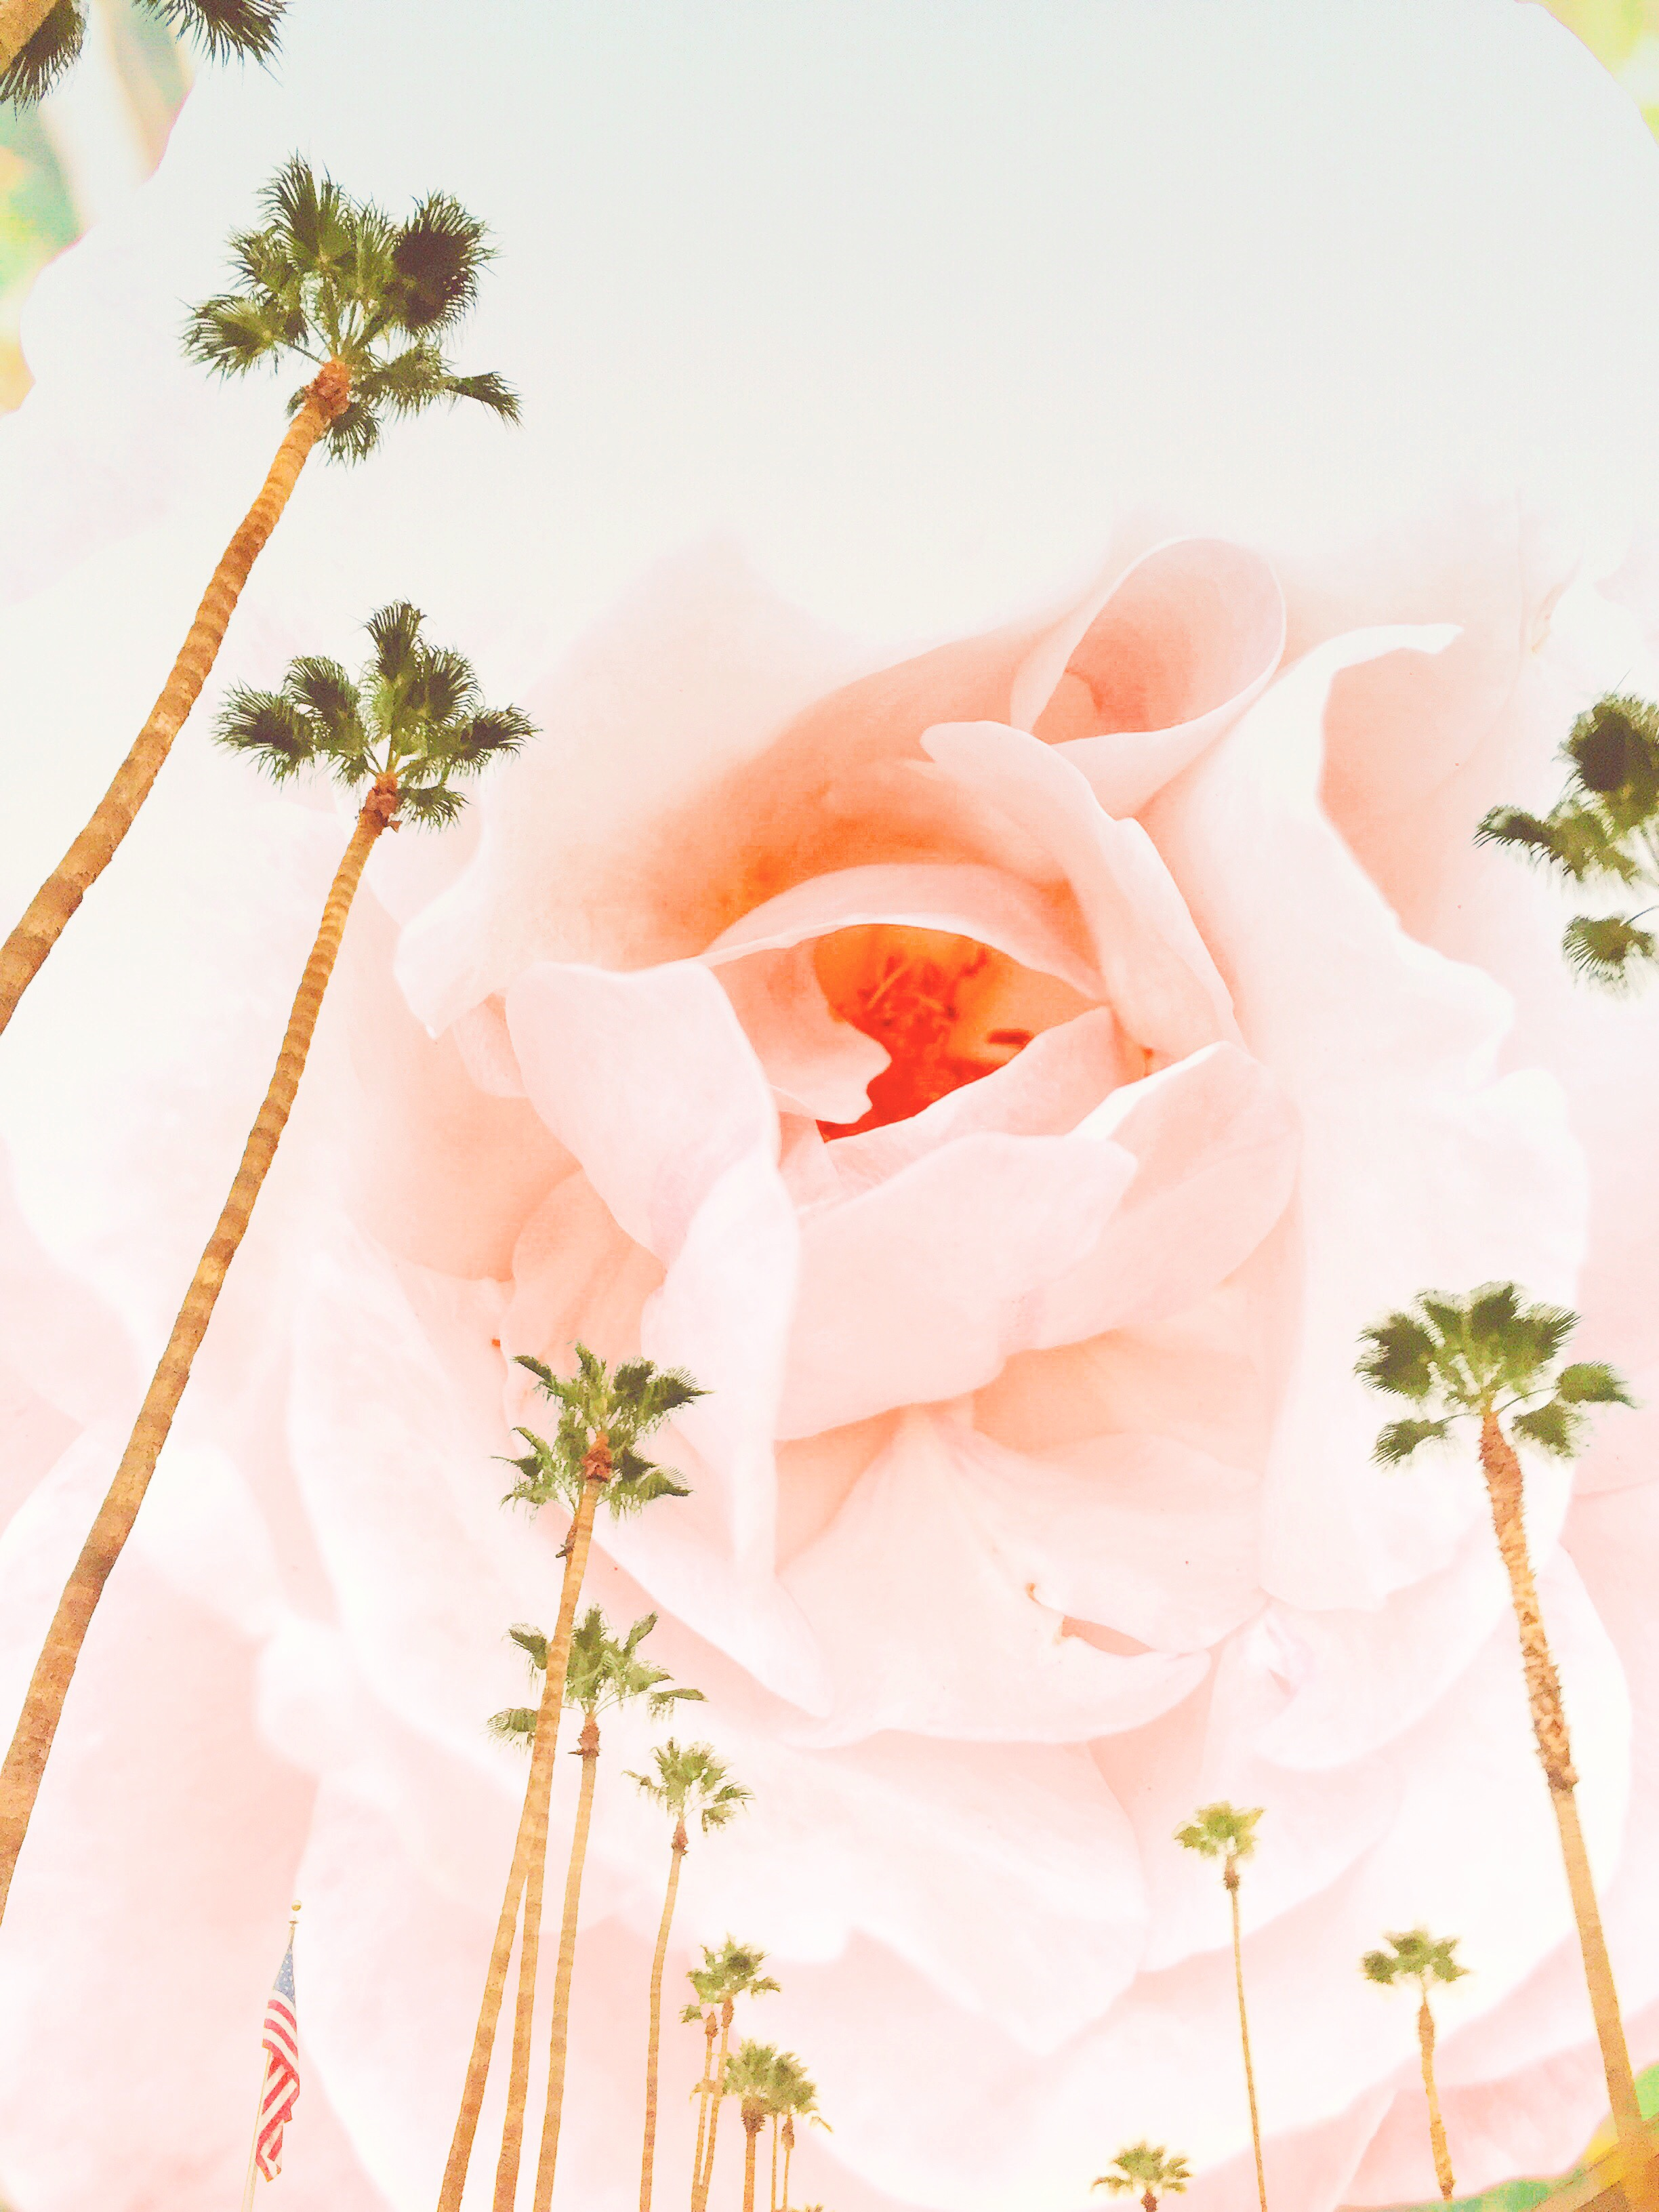 Palm Springs and the Pink Rose / collage art by Marissa Berrini